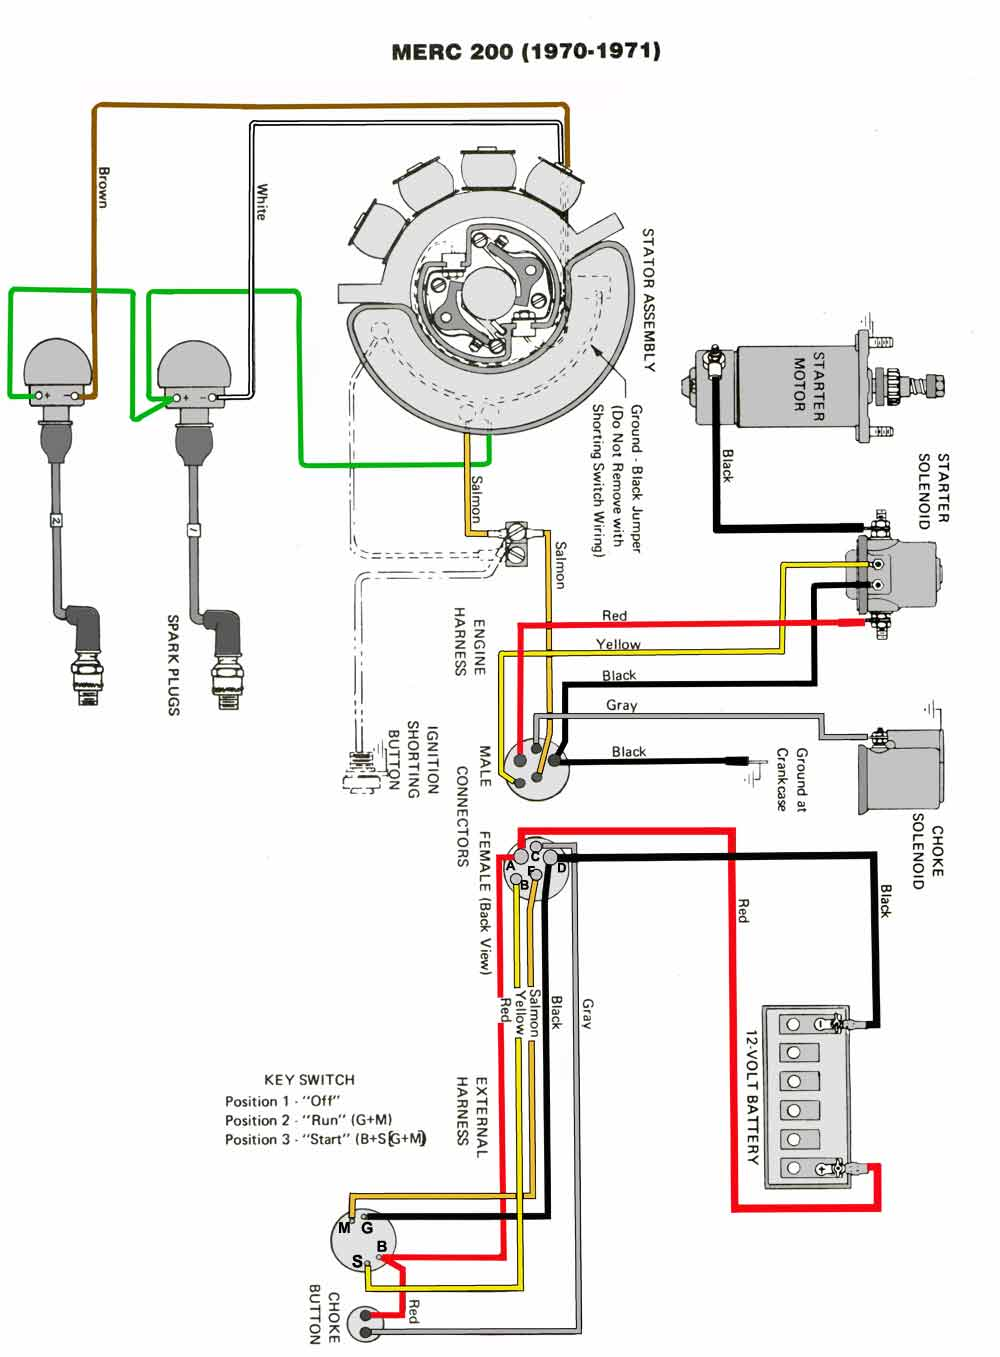 medium resolution of mercury outboard wiring diagrams mastertech marin rh maxrules com mercury 115 wiring diagram mercury outboard motor wiring diagram